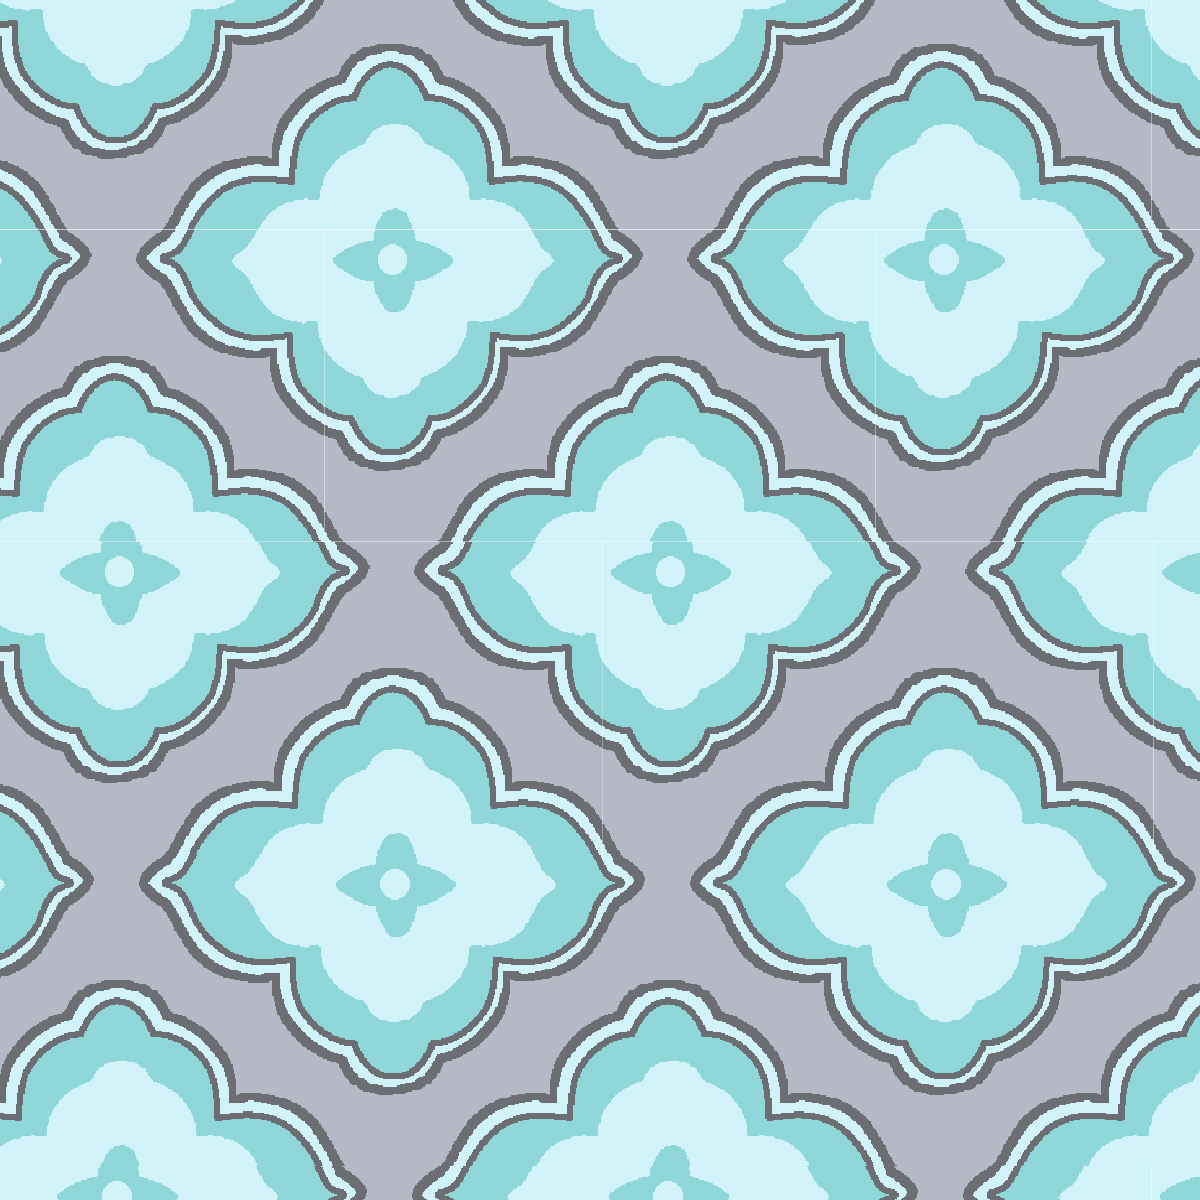 Waverly Inspirations Large Floral Aqua 100% Cotton Print Fabric 44'' Wide, 140 Gsm, Quilt Crafts Cut By The Yard